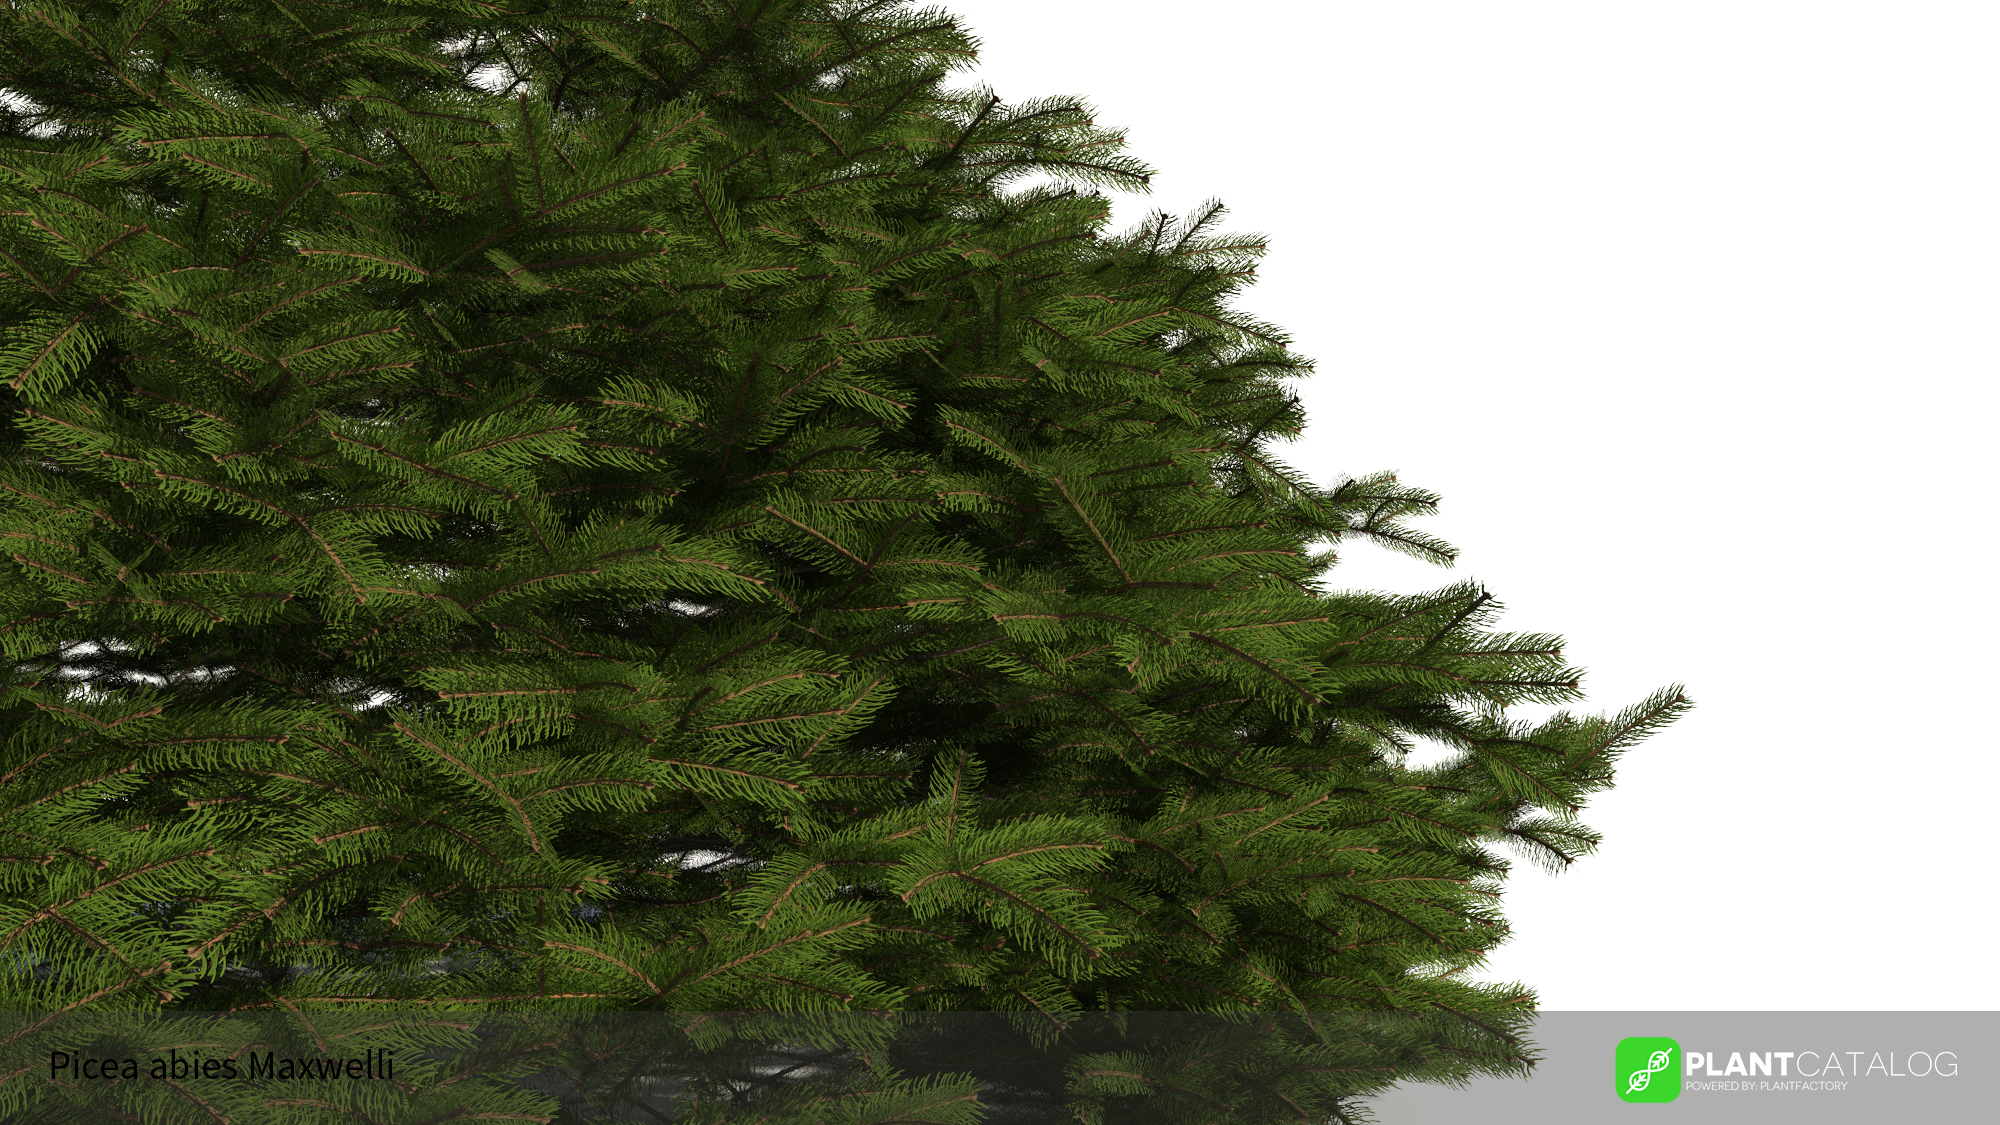 3D model of the Maxwell's Norway spruce - Picea abies 'Maxwellii' - from the PlantCatalog, rendered in VUE